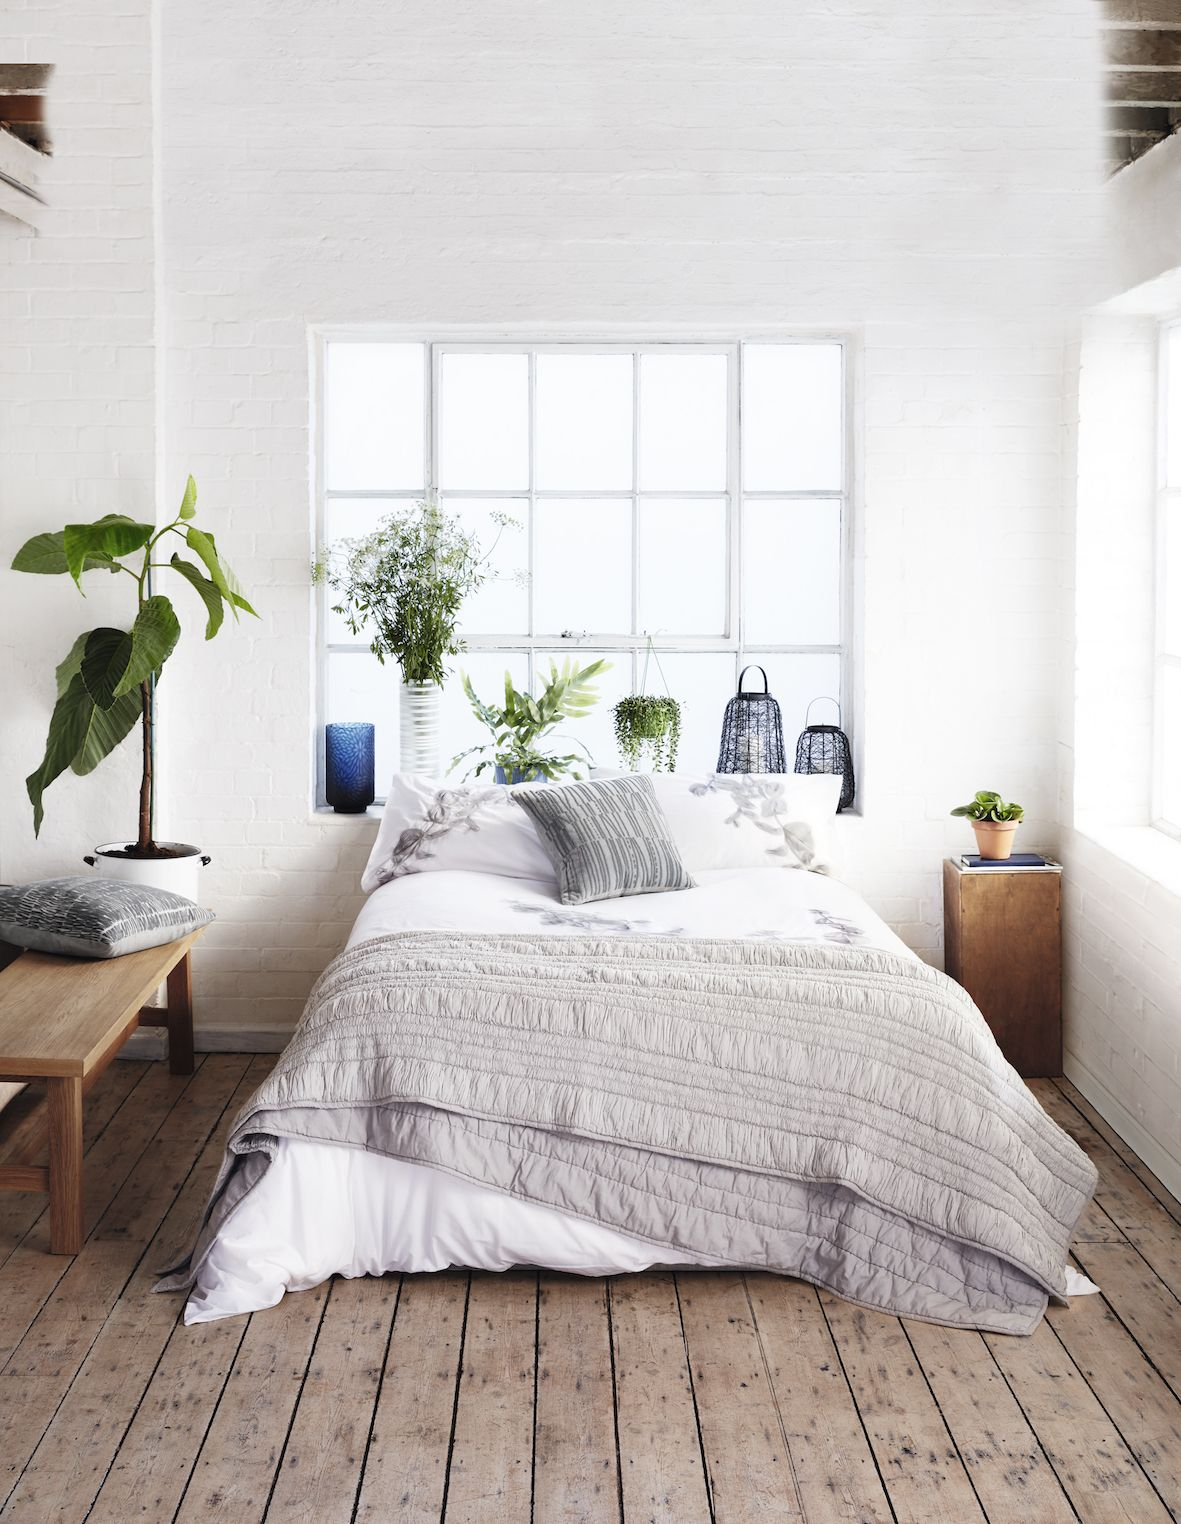 How To Simplify Your Home And Transform Life With Minimalism